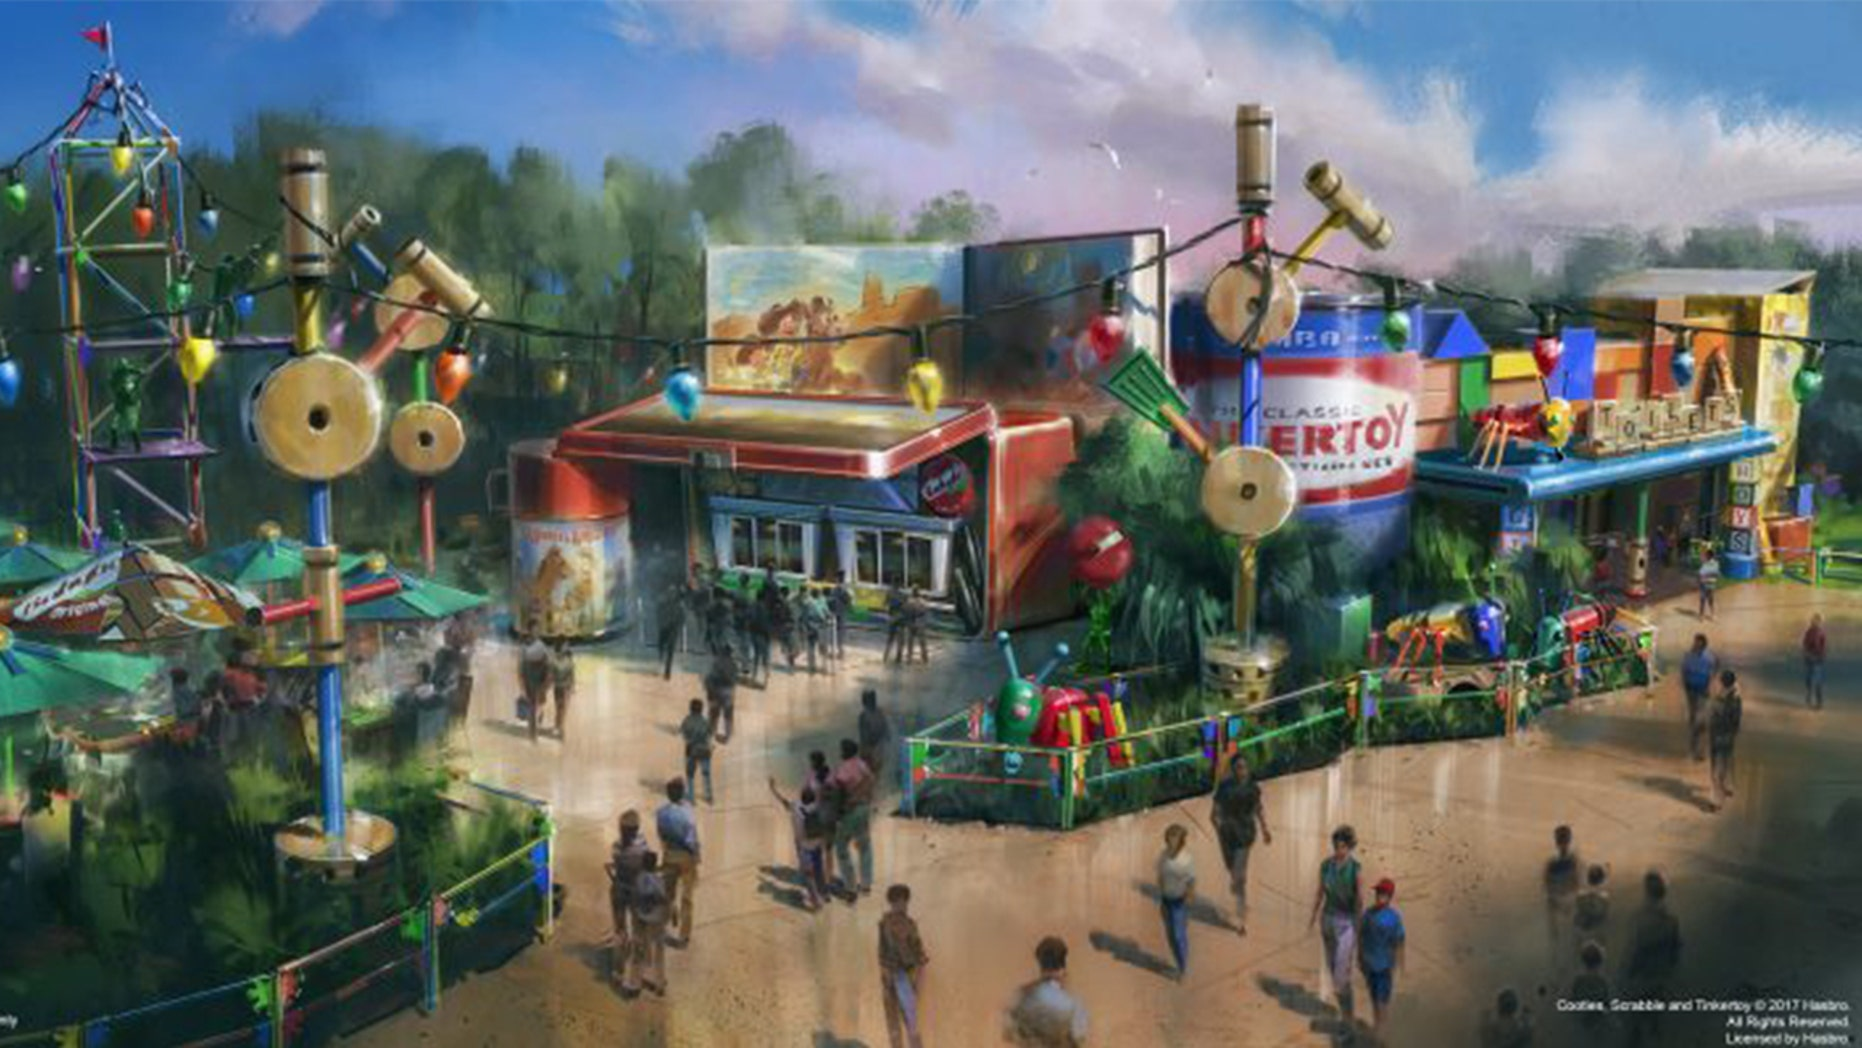 Toy Story Land features some of Andy's favorite toys, as well as his thermos and lunchbox.